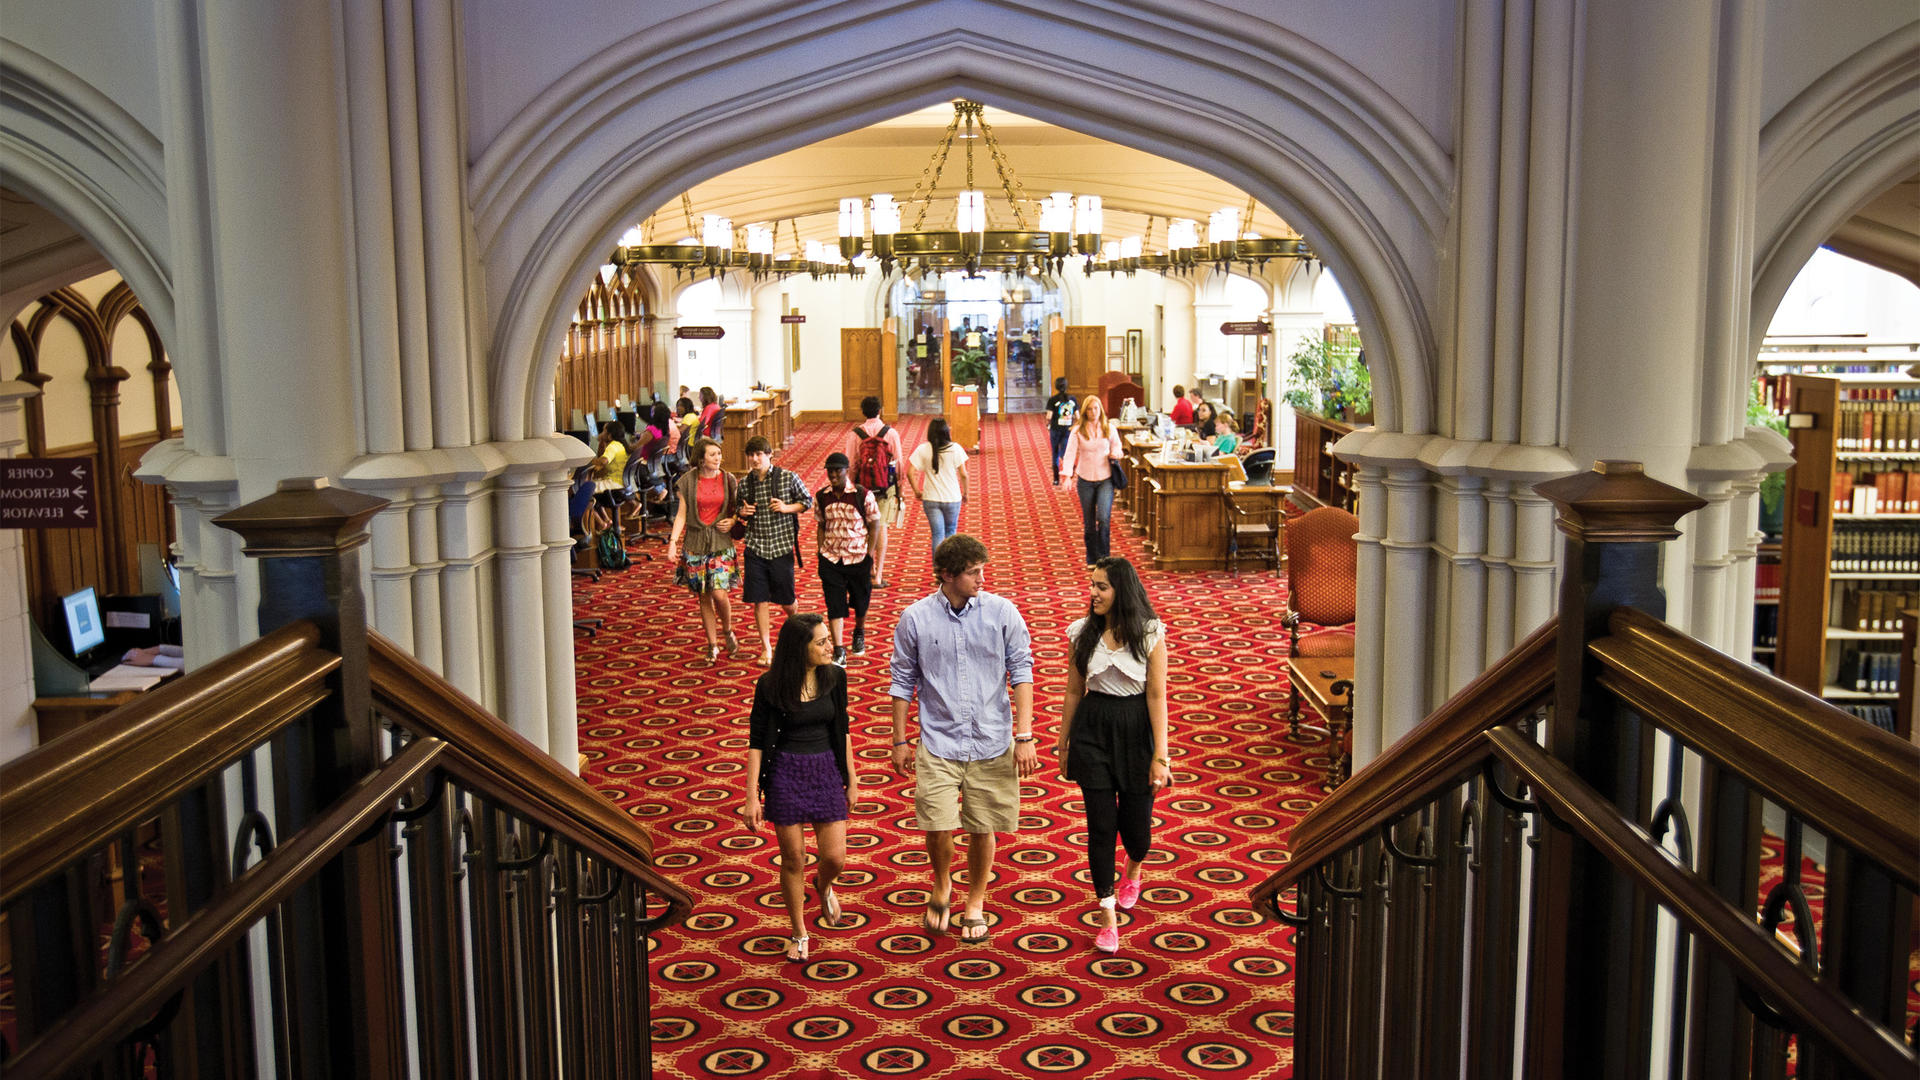 Three students approach the stairs on the main floor of the library